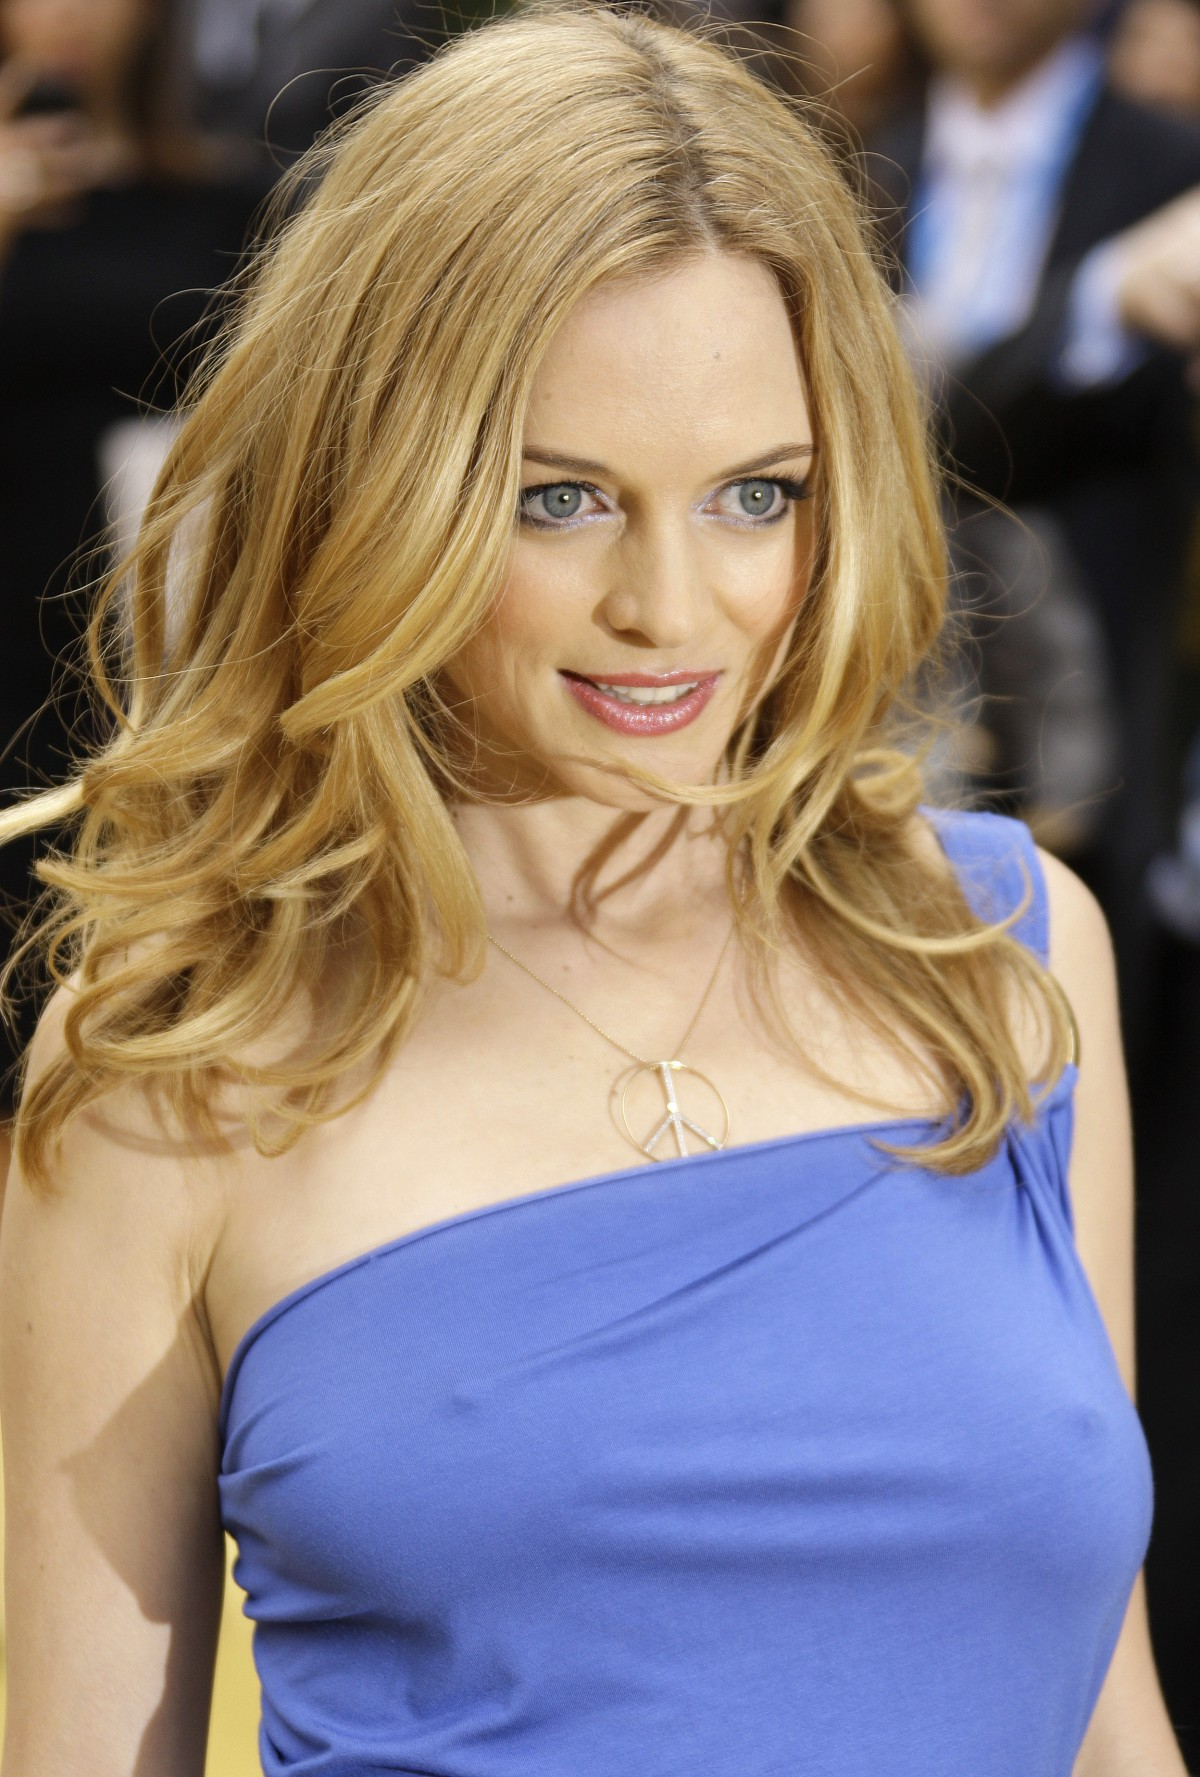 Heather Graham Actor Images & Pictures - Becuo